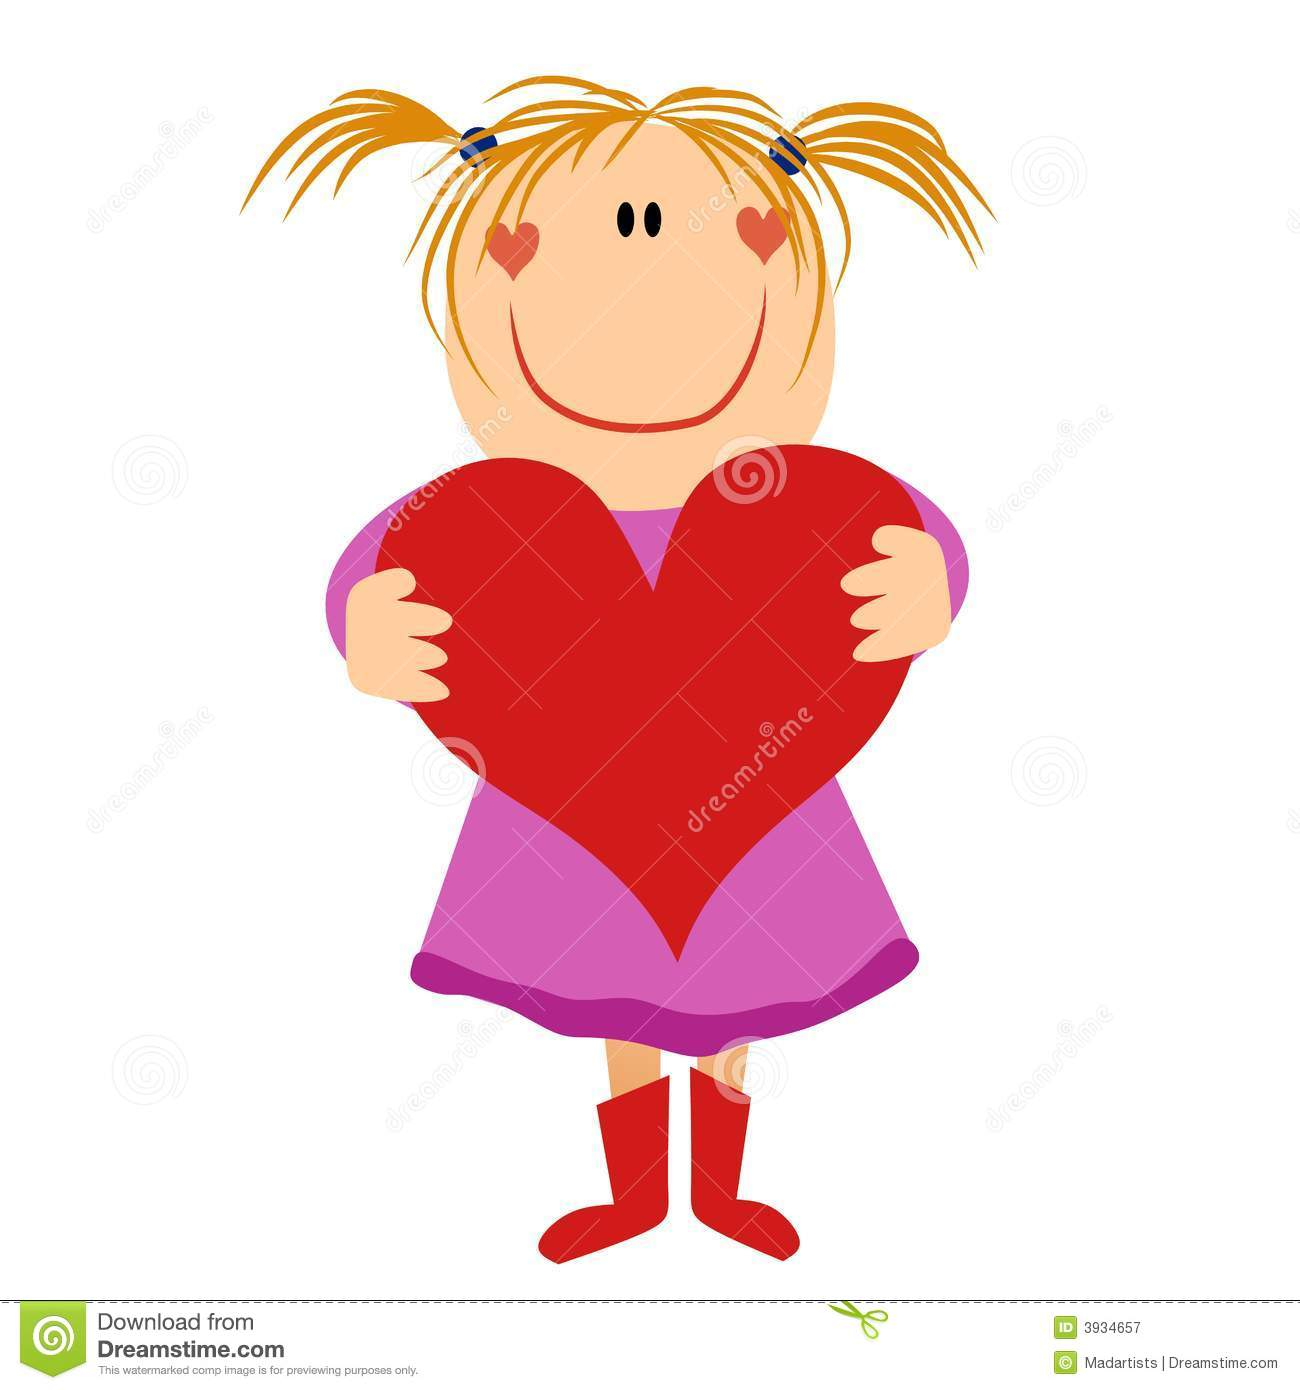 Cartoonish Little Girl Holding Valentine Heart Royalty Free Stock.